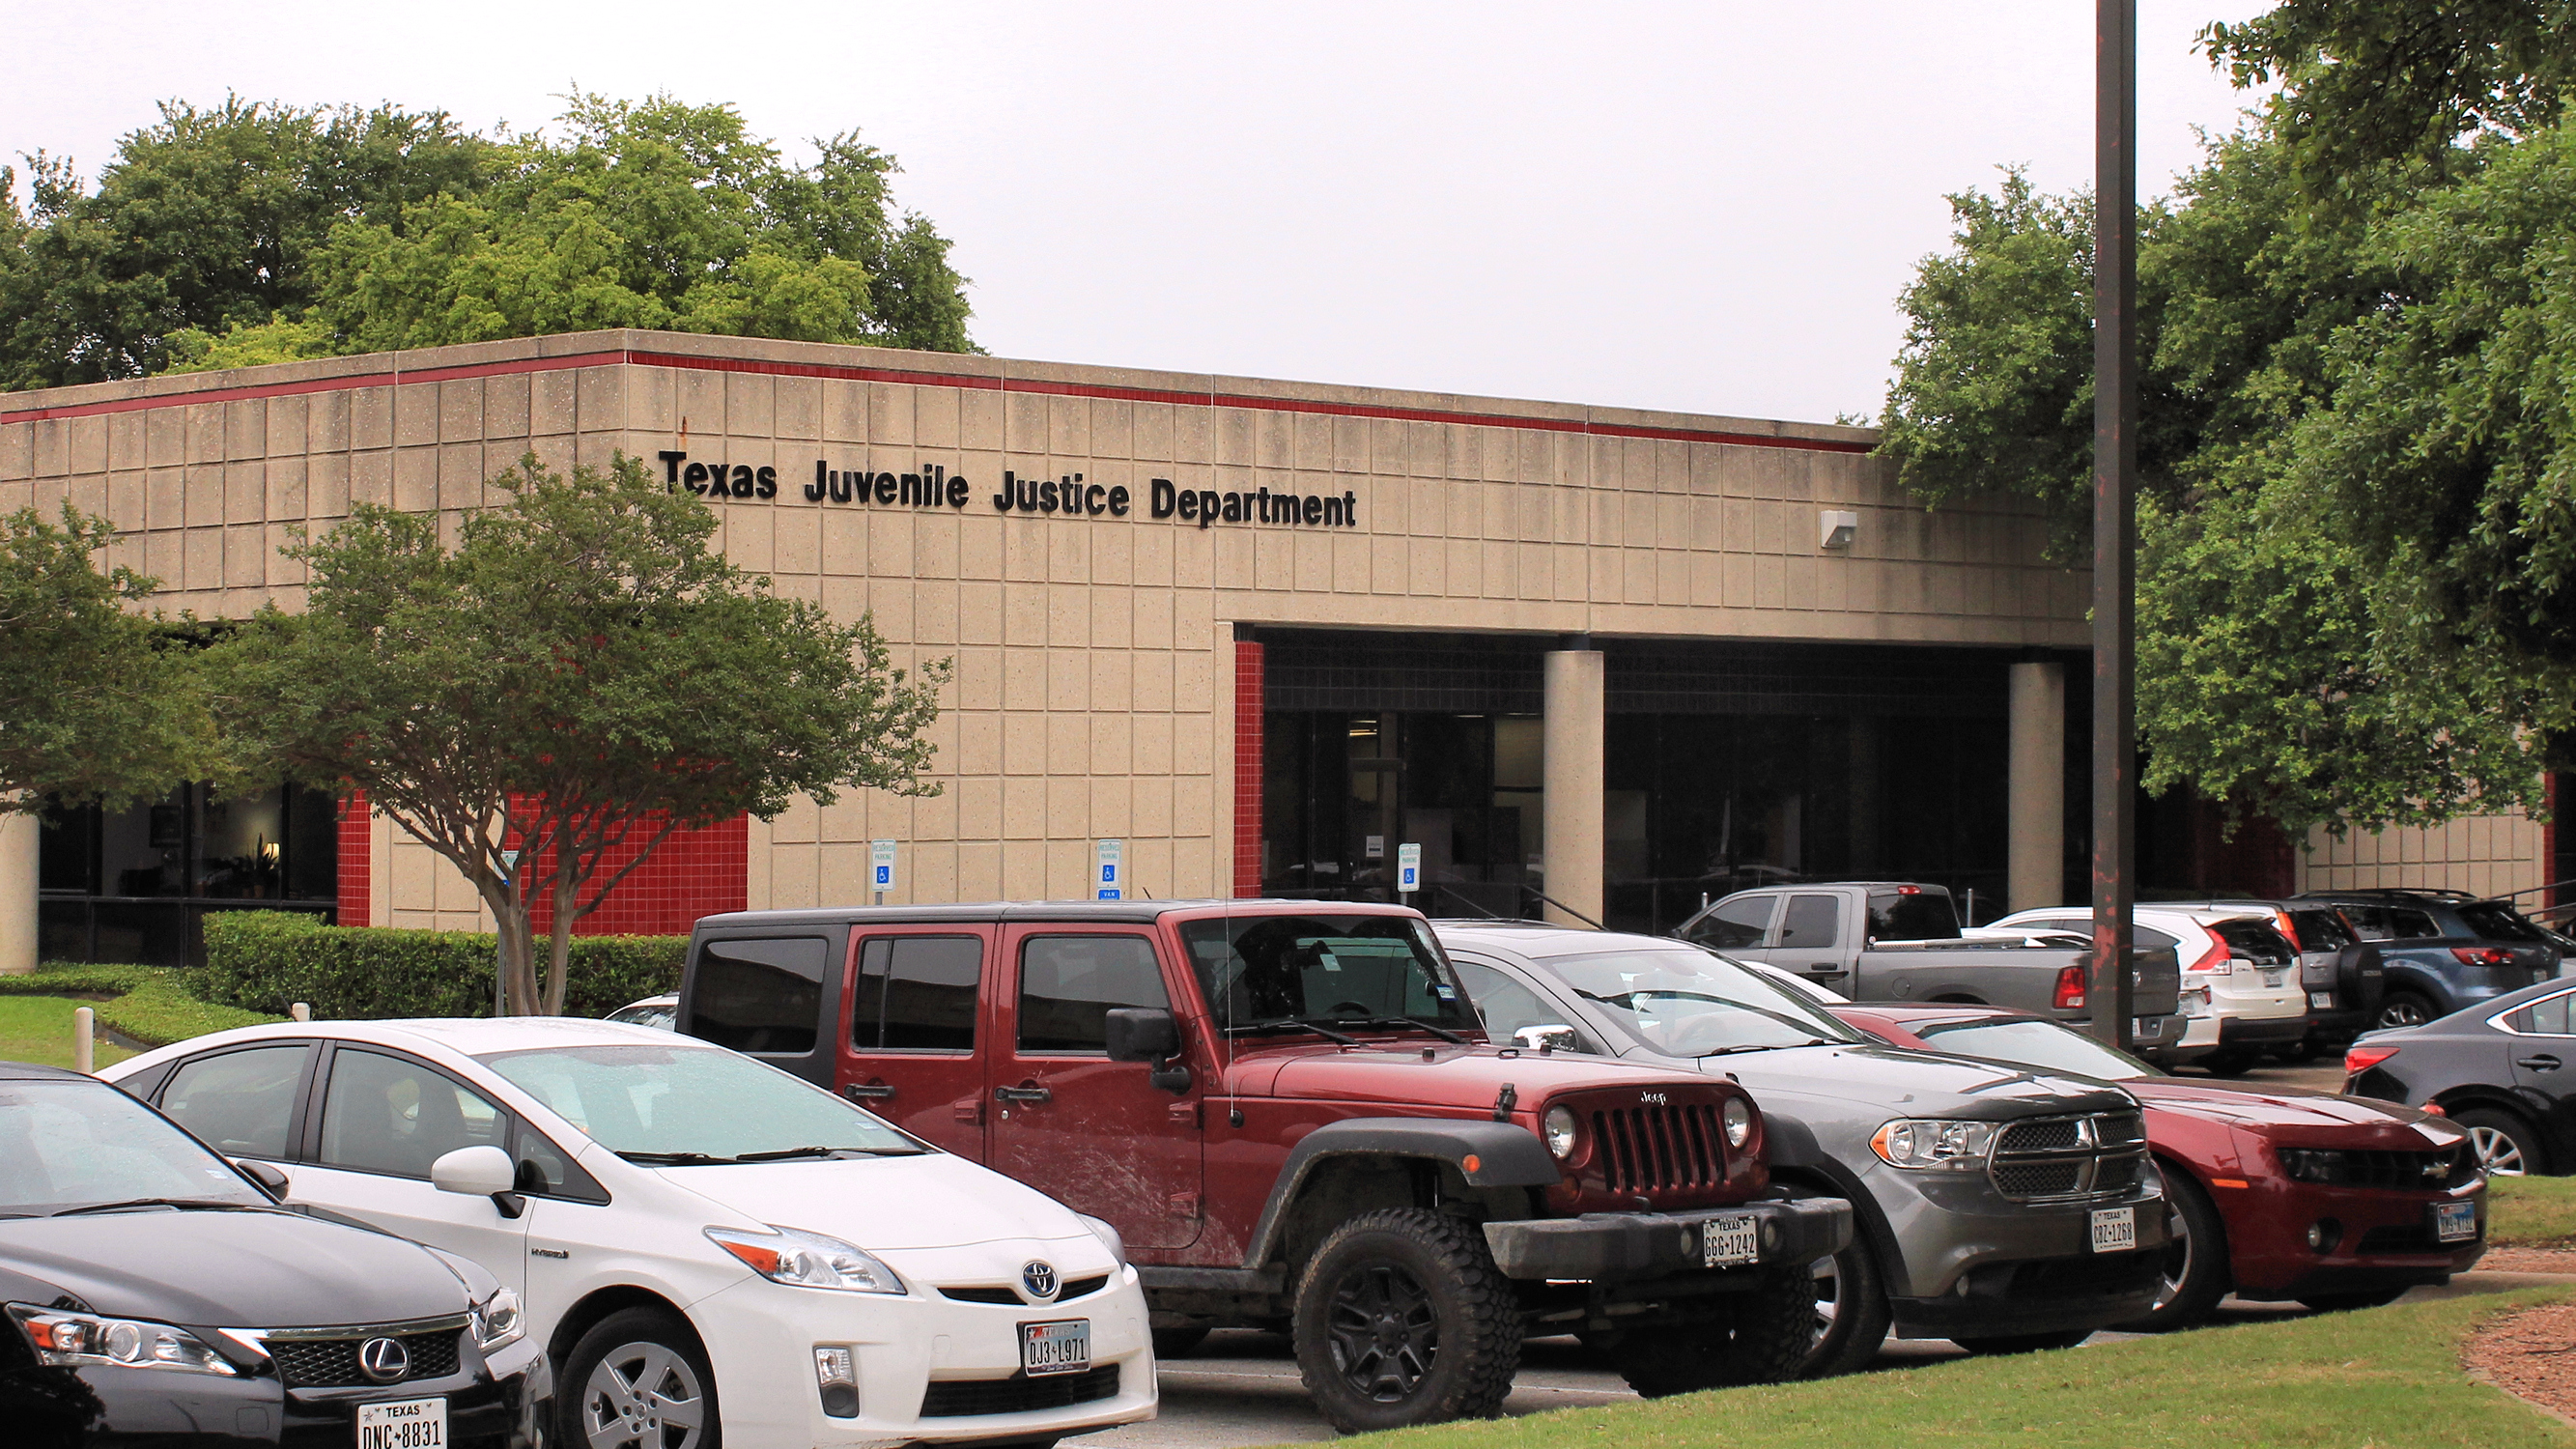 Texas Juvenile Justice Department Wikiwand